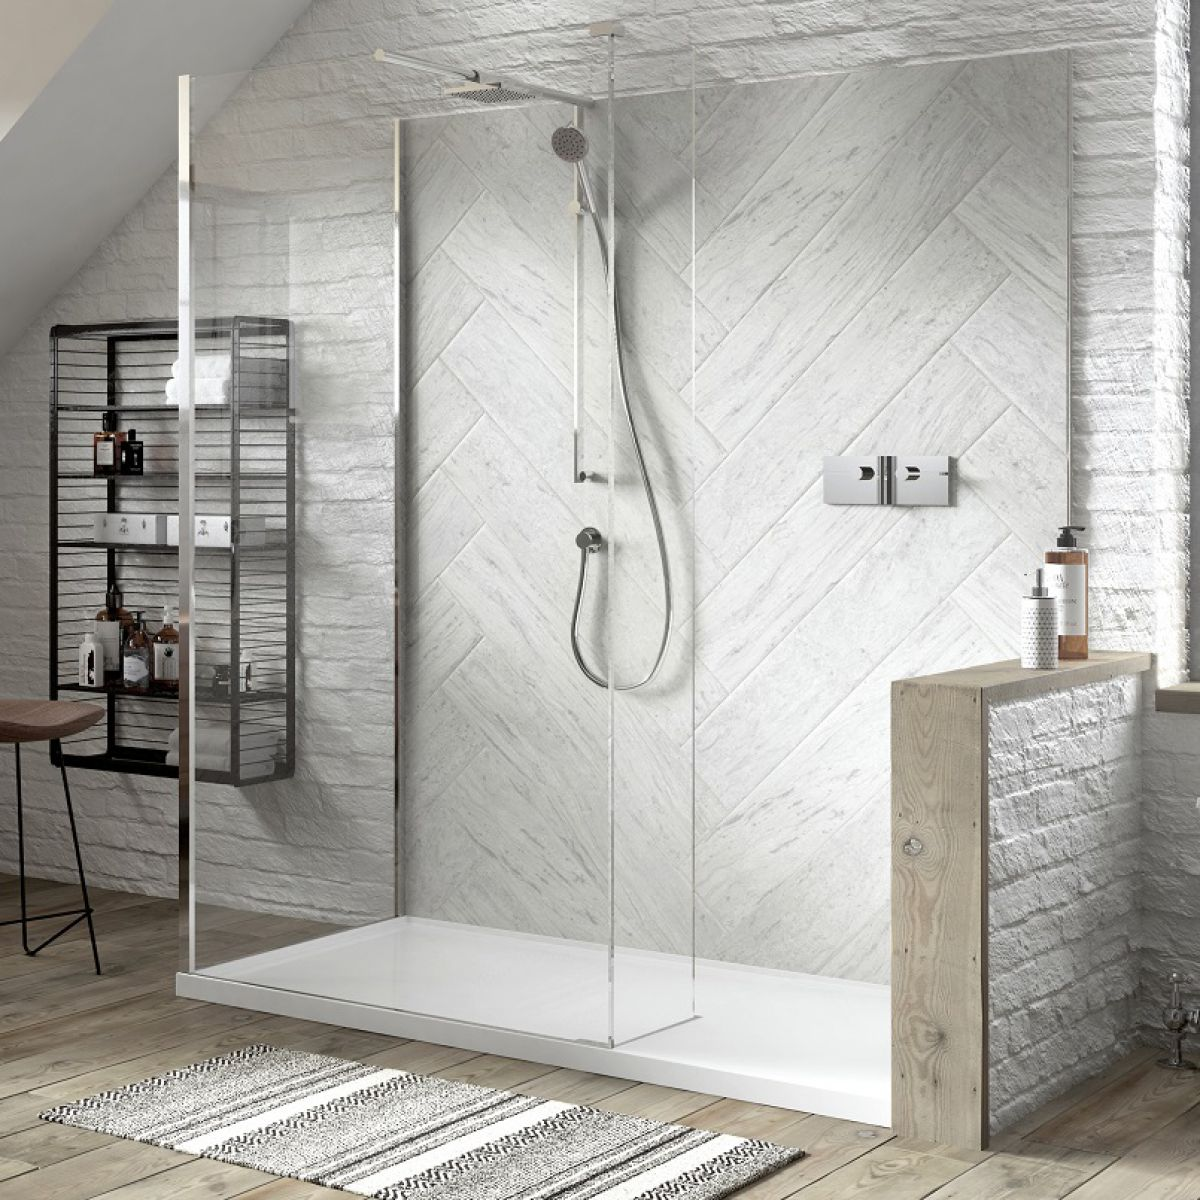 Etonnant Matki Boutique Corner Walk In Shower Enclosure